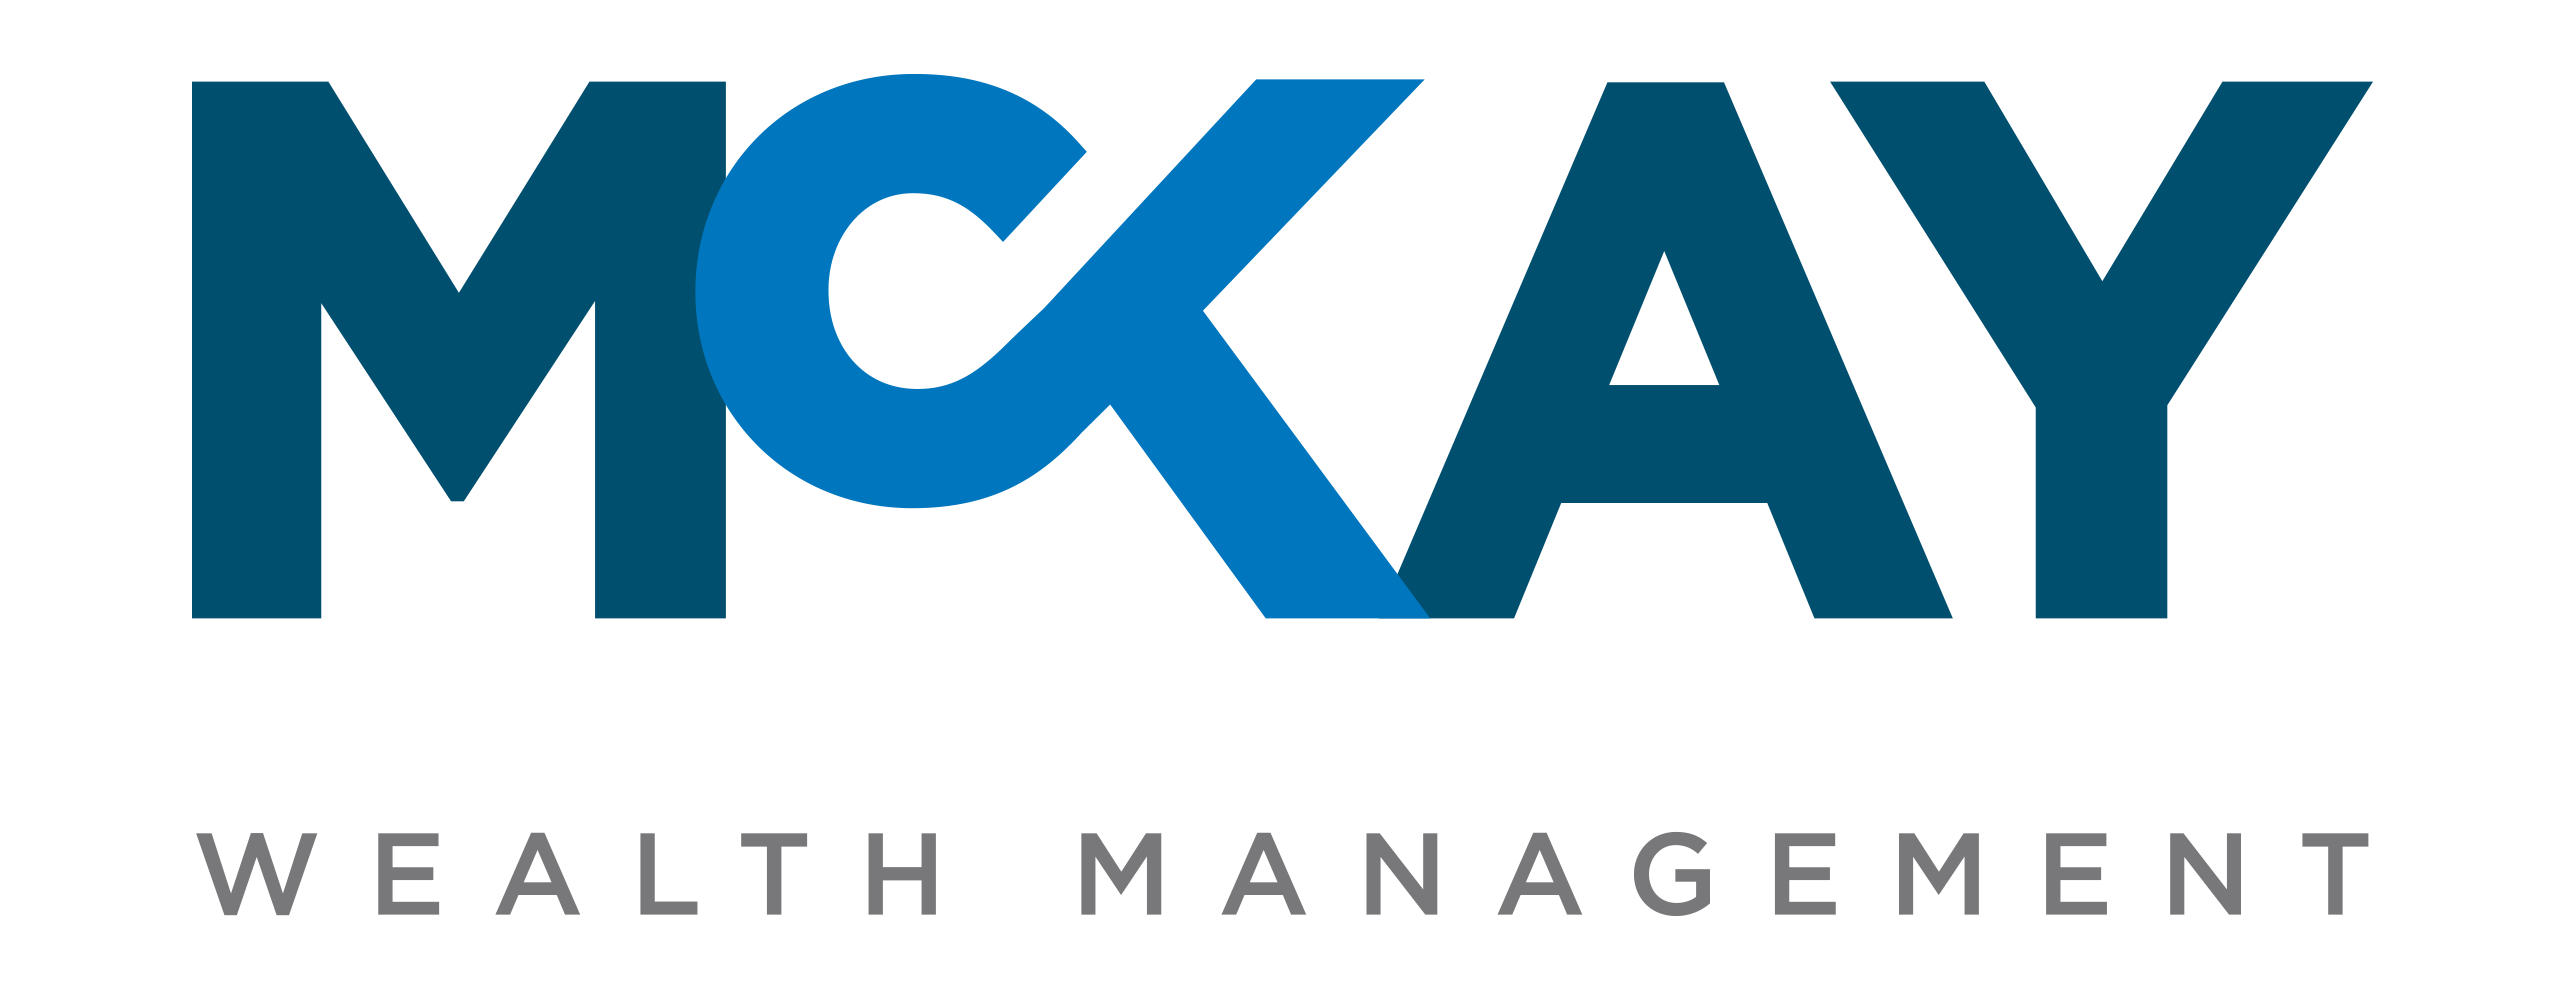 McKay Wealth Management